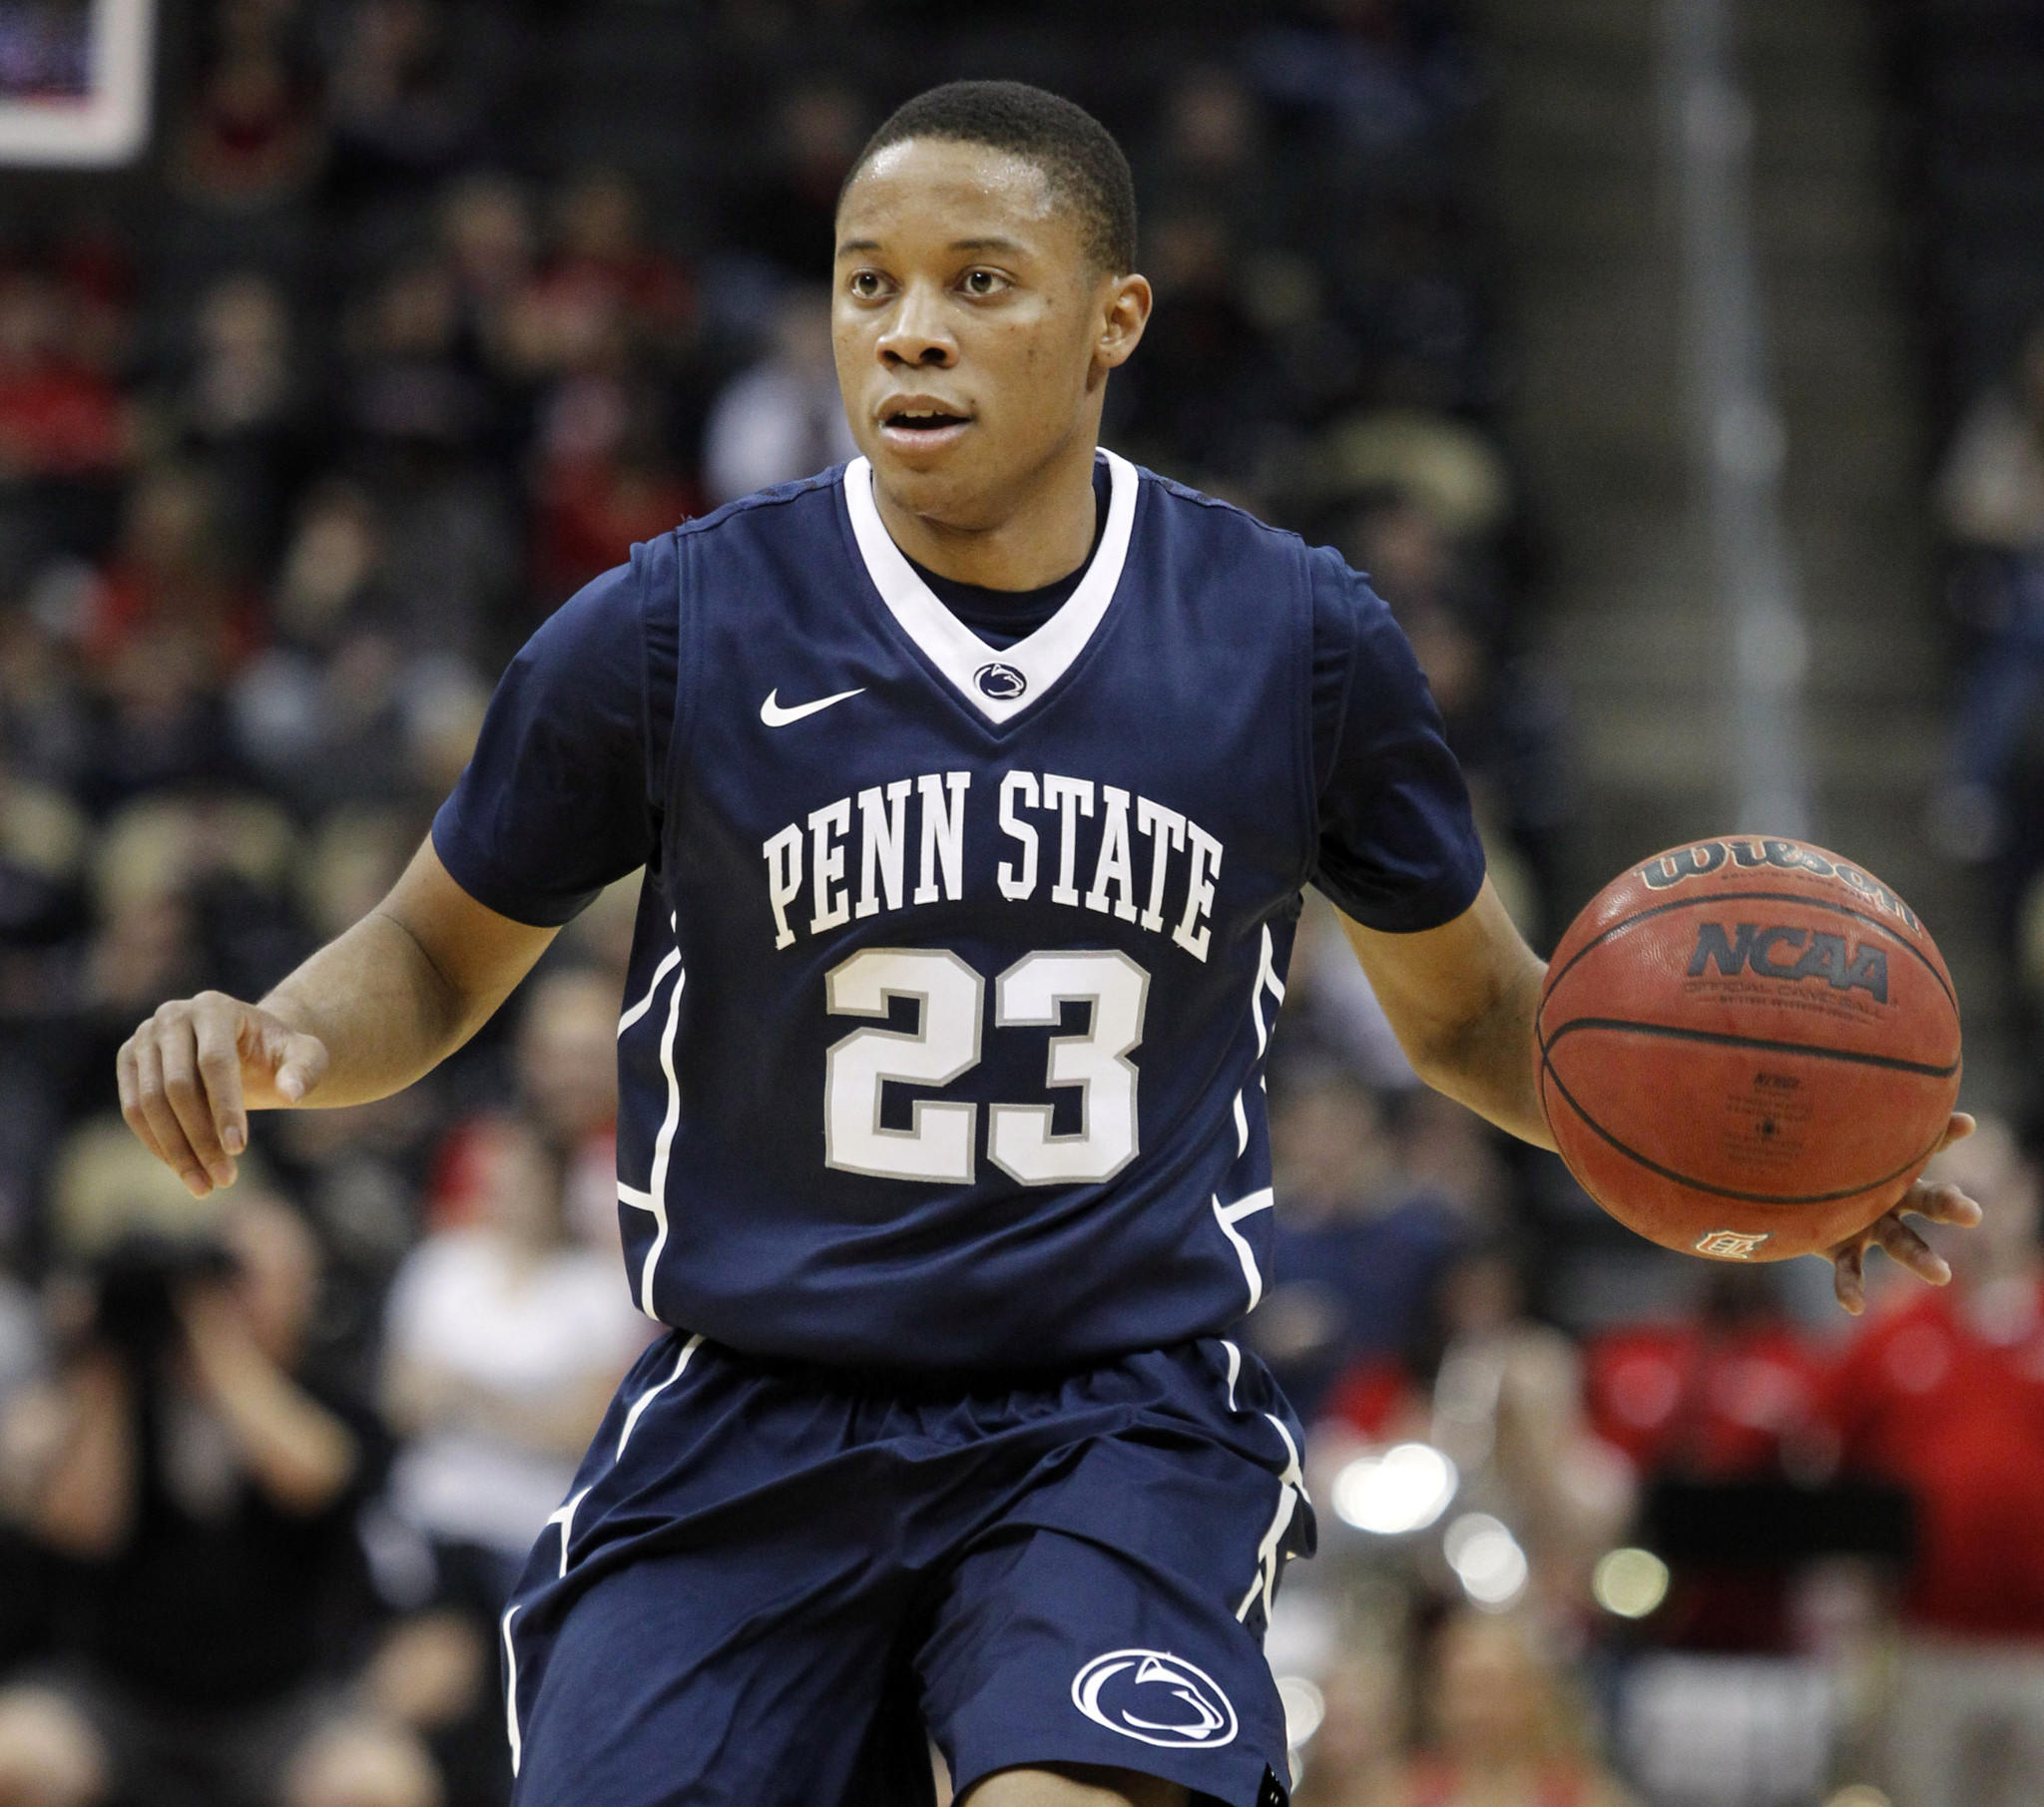 Penn State's Tim Frazier handles the ball against Duquesne.